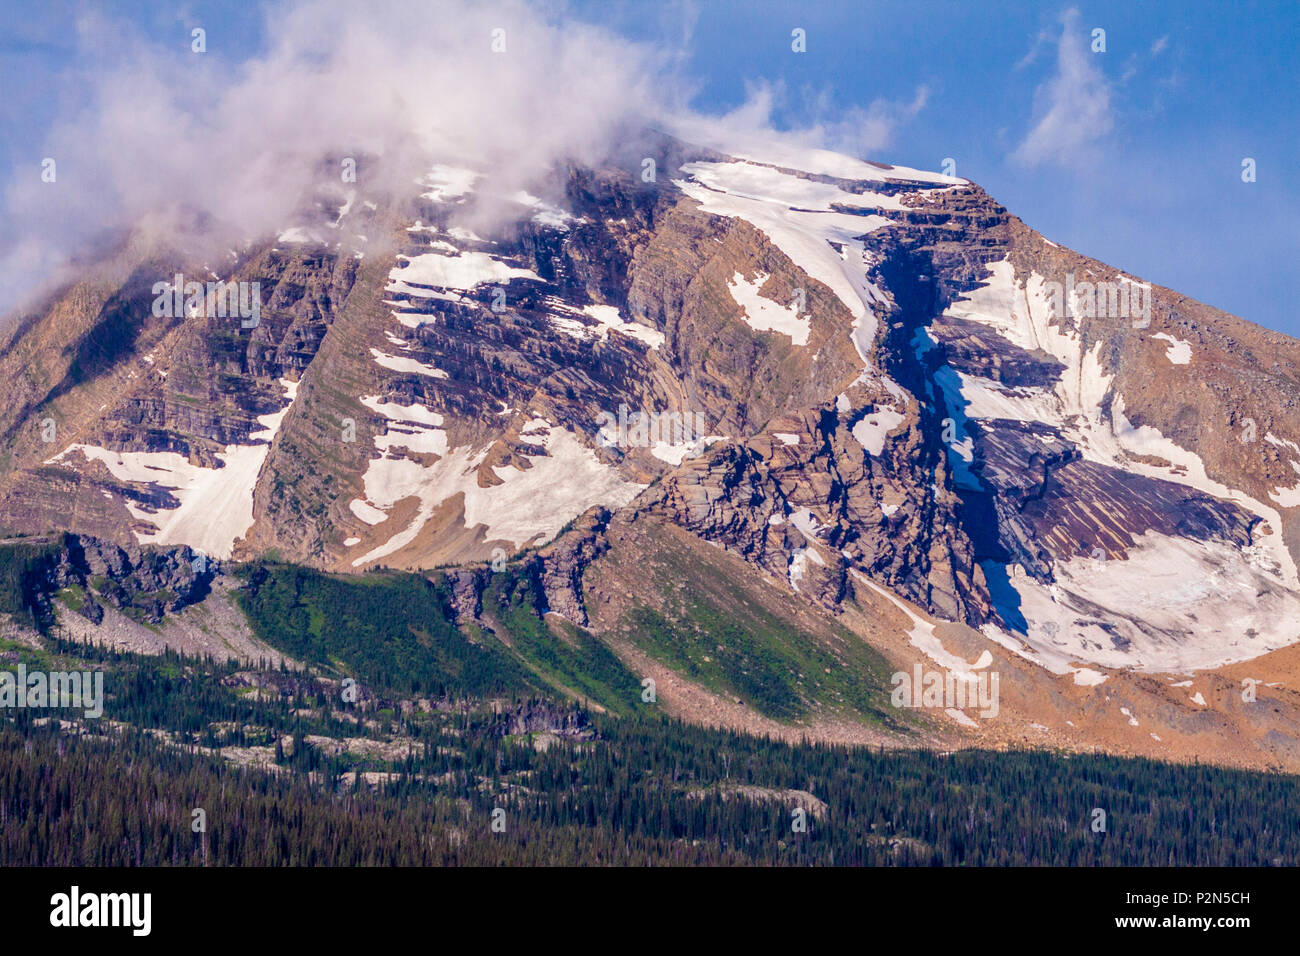 Heaven's Peak Mountains in Glacier National Park in Montana. - Stock Image